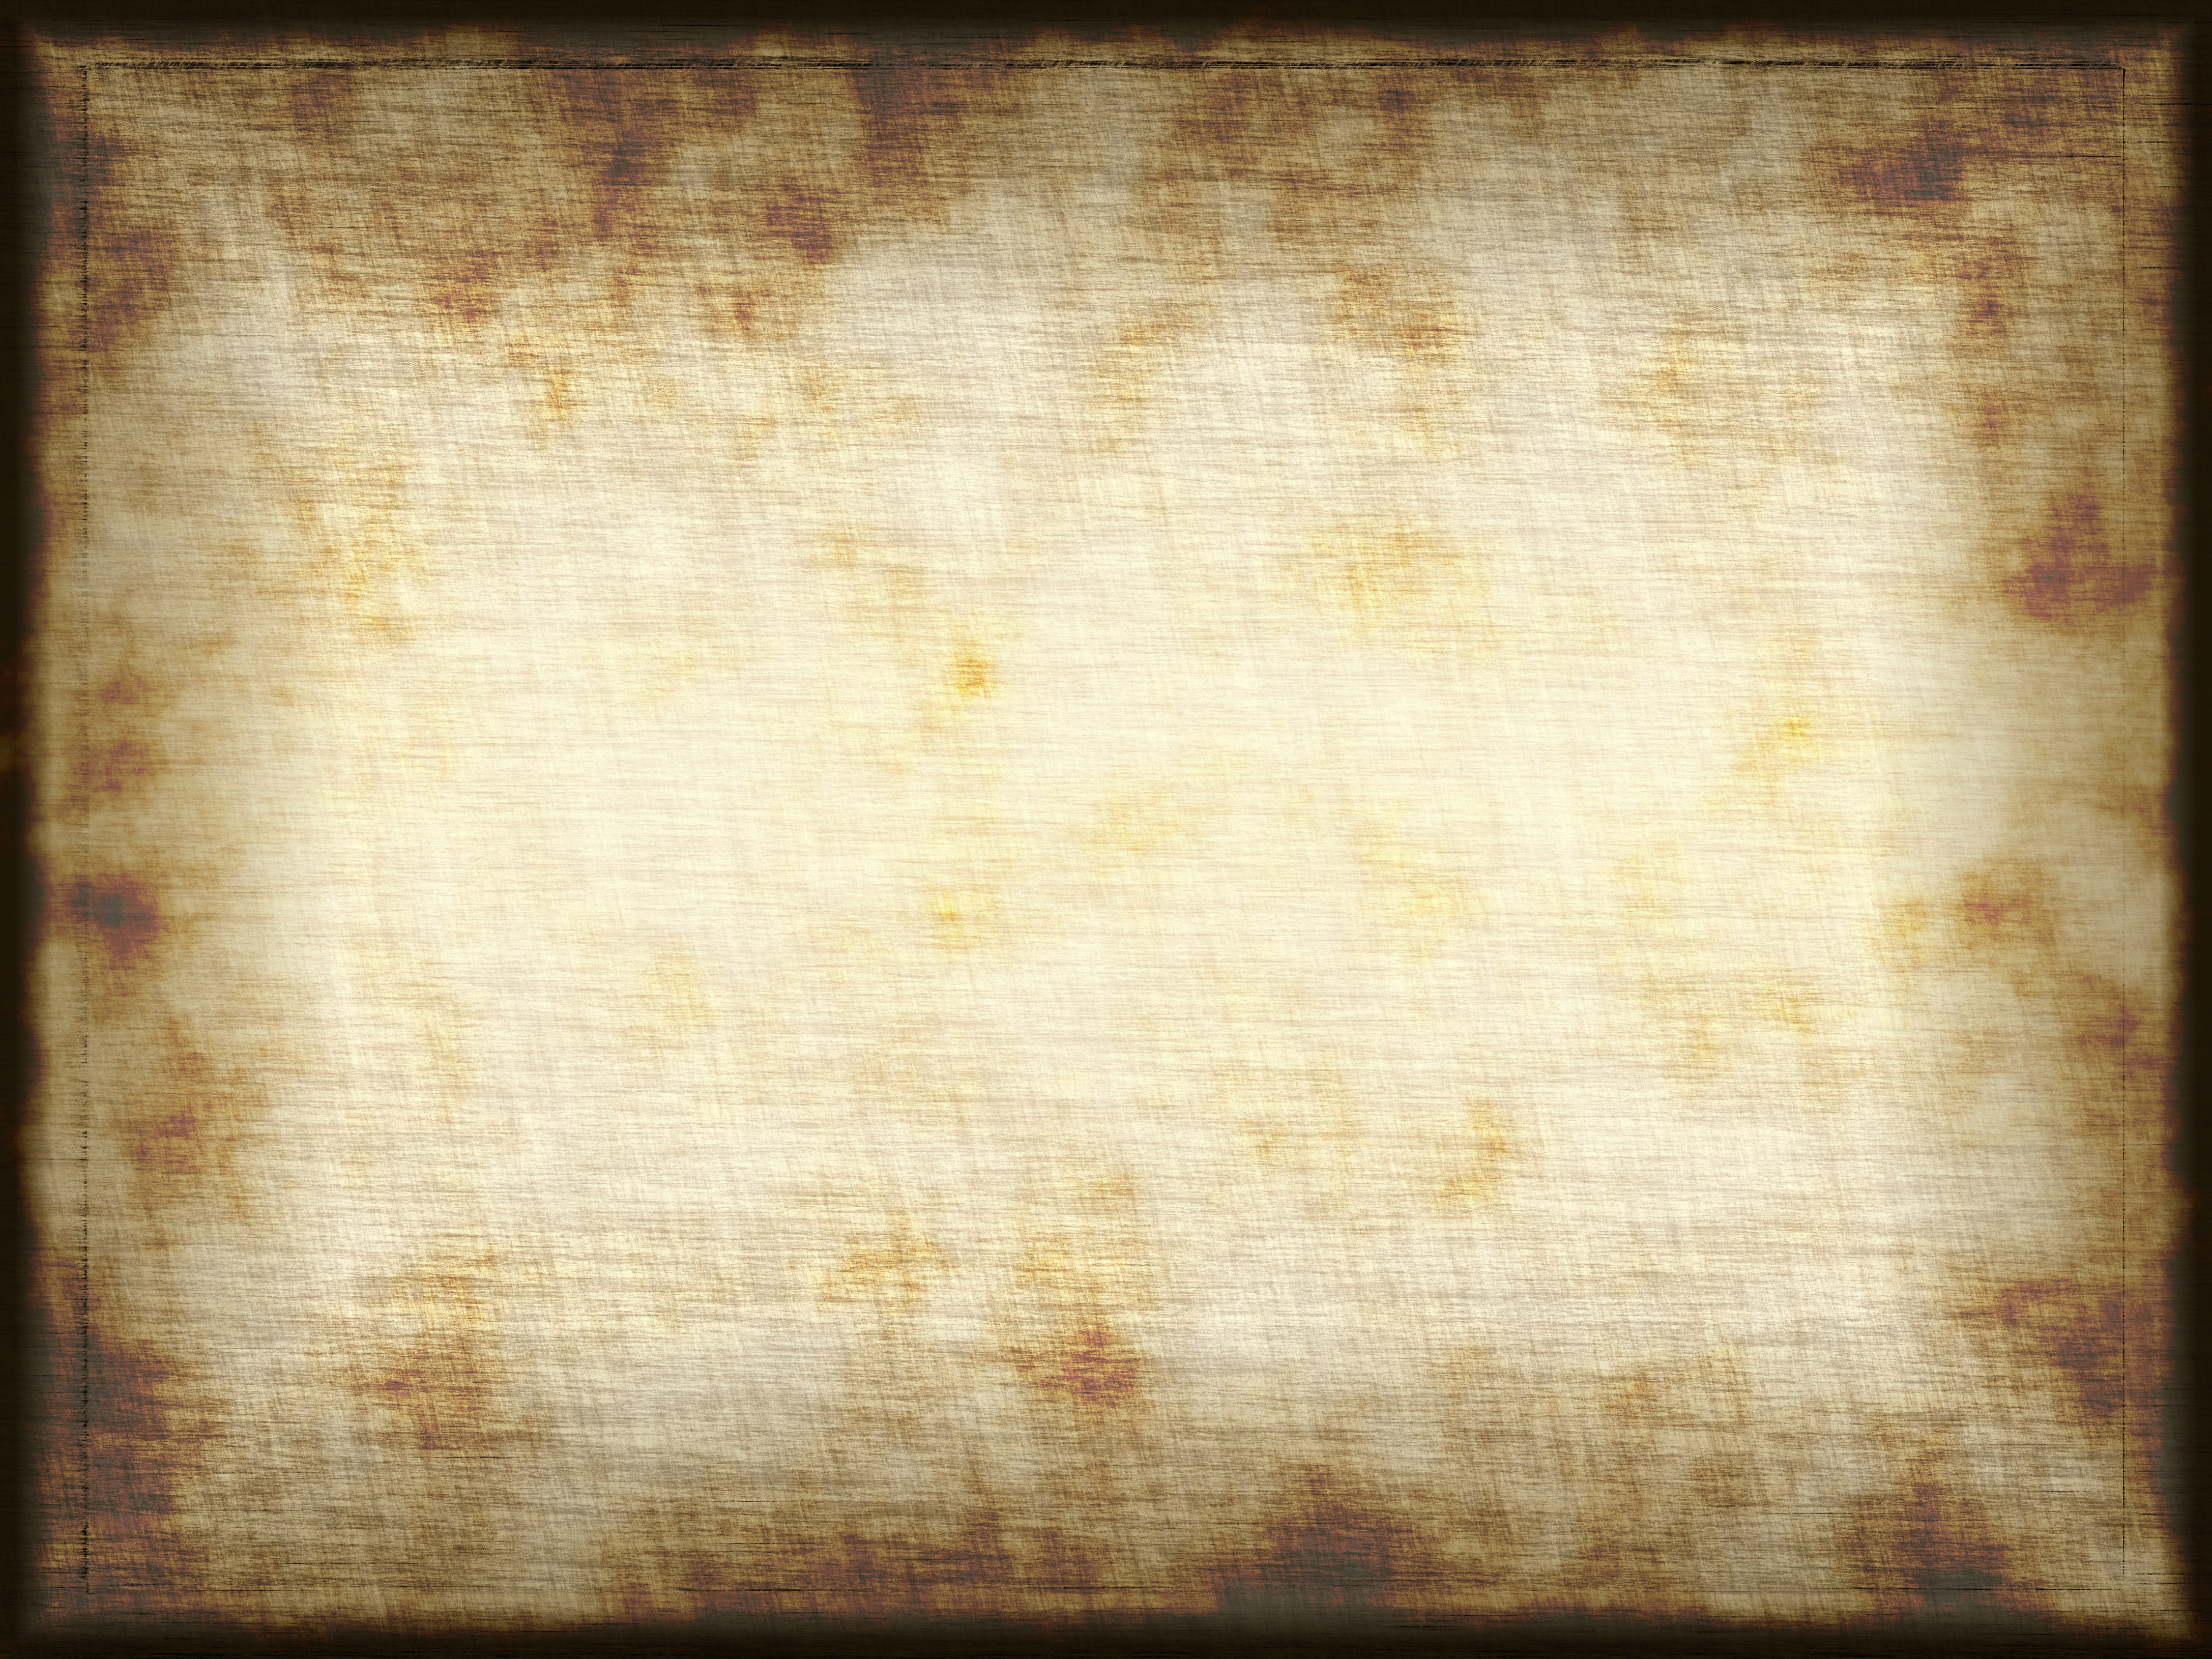 Old grungy parchment paper background texture 4500x3375